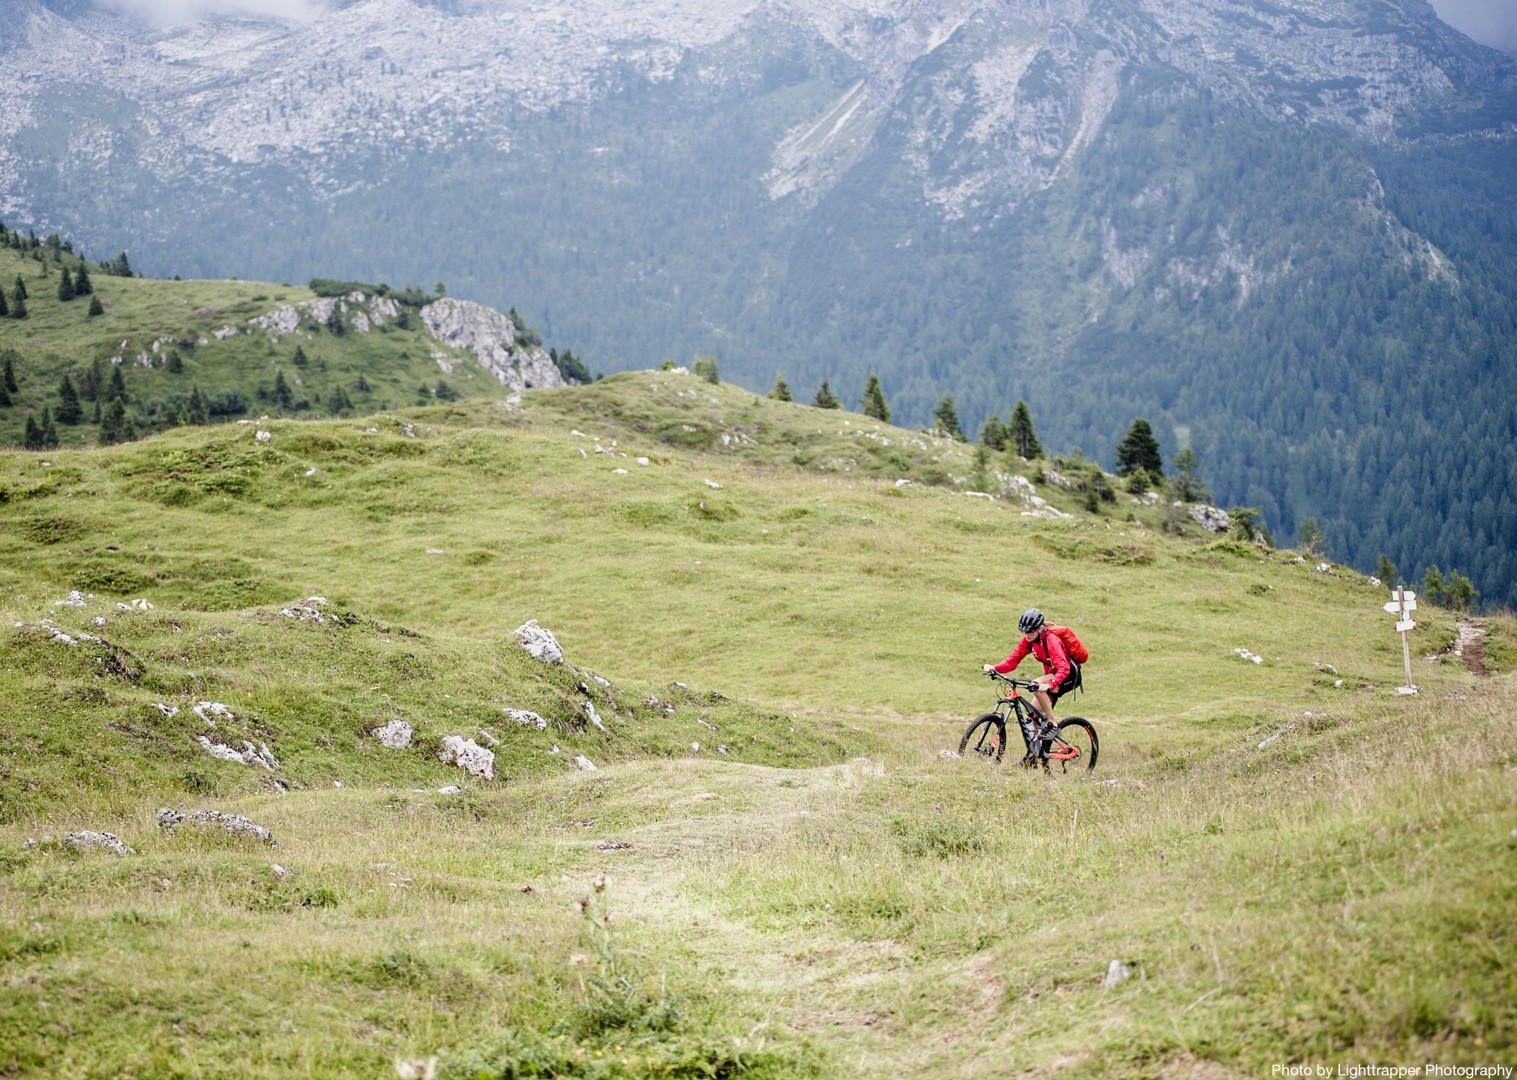 val-di-susa-guided-mountain-bike-holiday-italy-and-france-alpine-adventure.jpg - Italy and France - Alpine Adventure - Mountain Biking